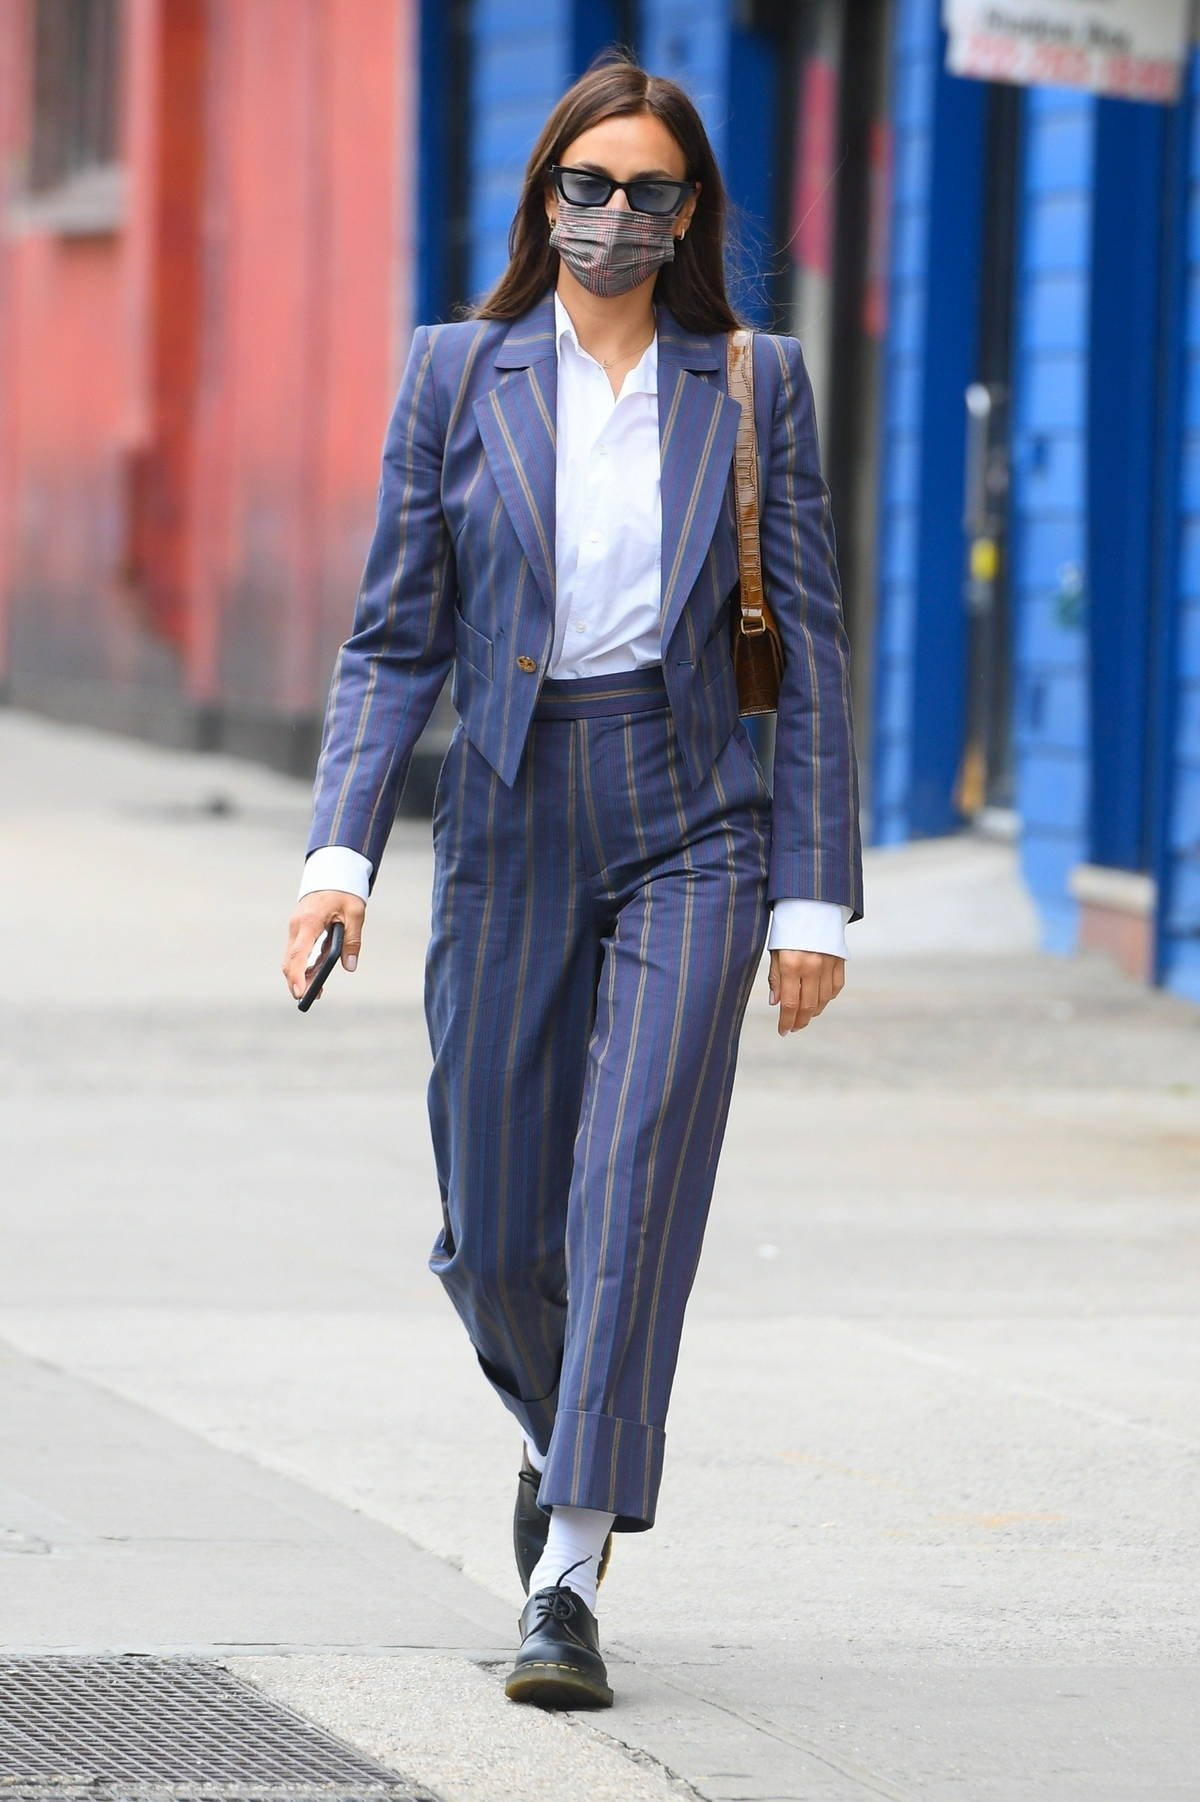 Irina Shayk looks sharp in a blue pinstriped suit as she steps out with her daughter in Manhattan, New York City